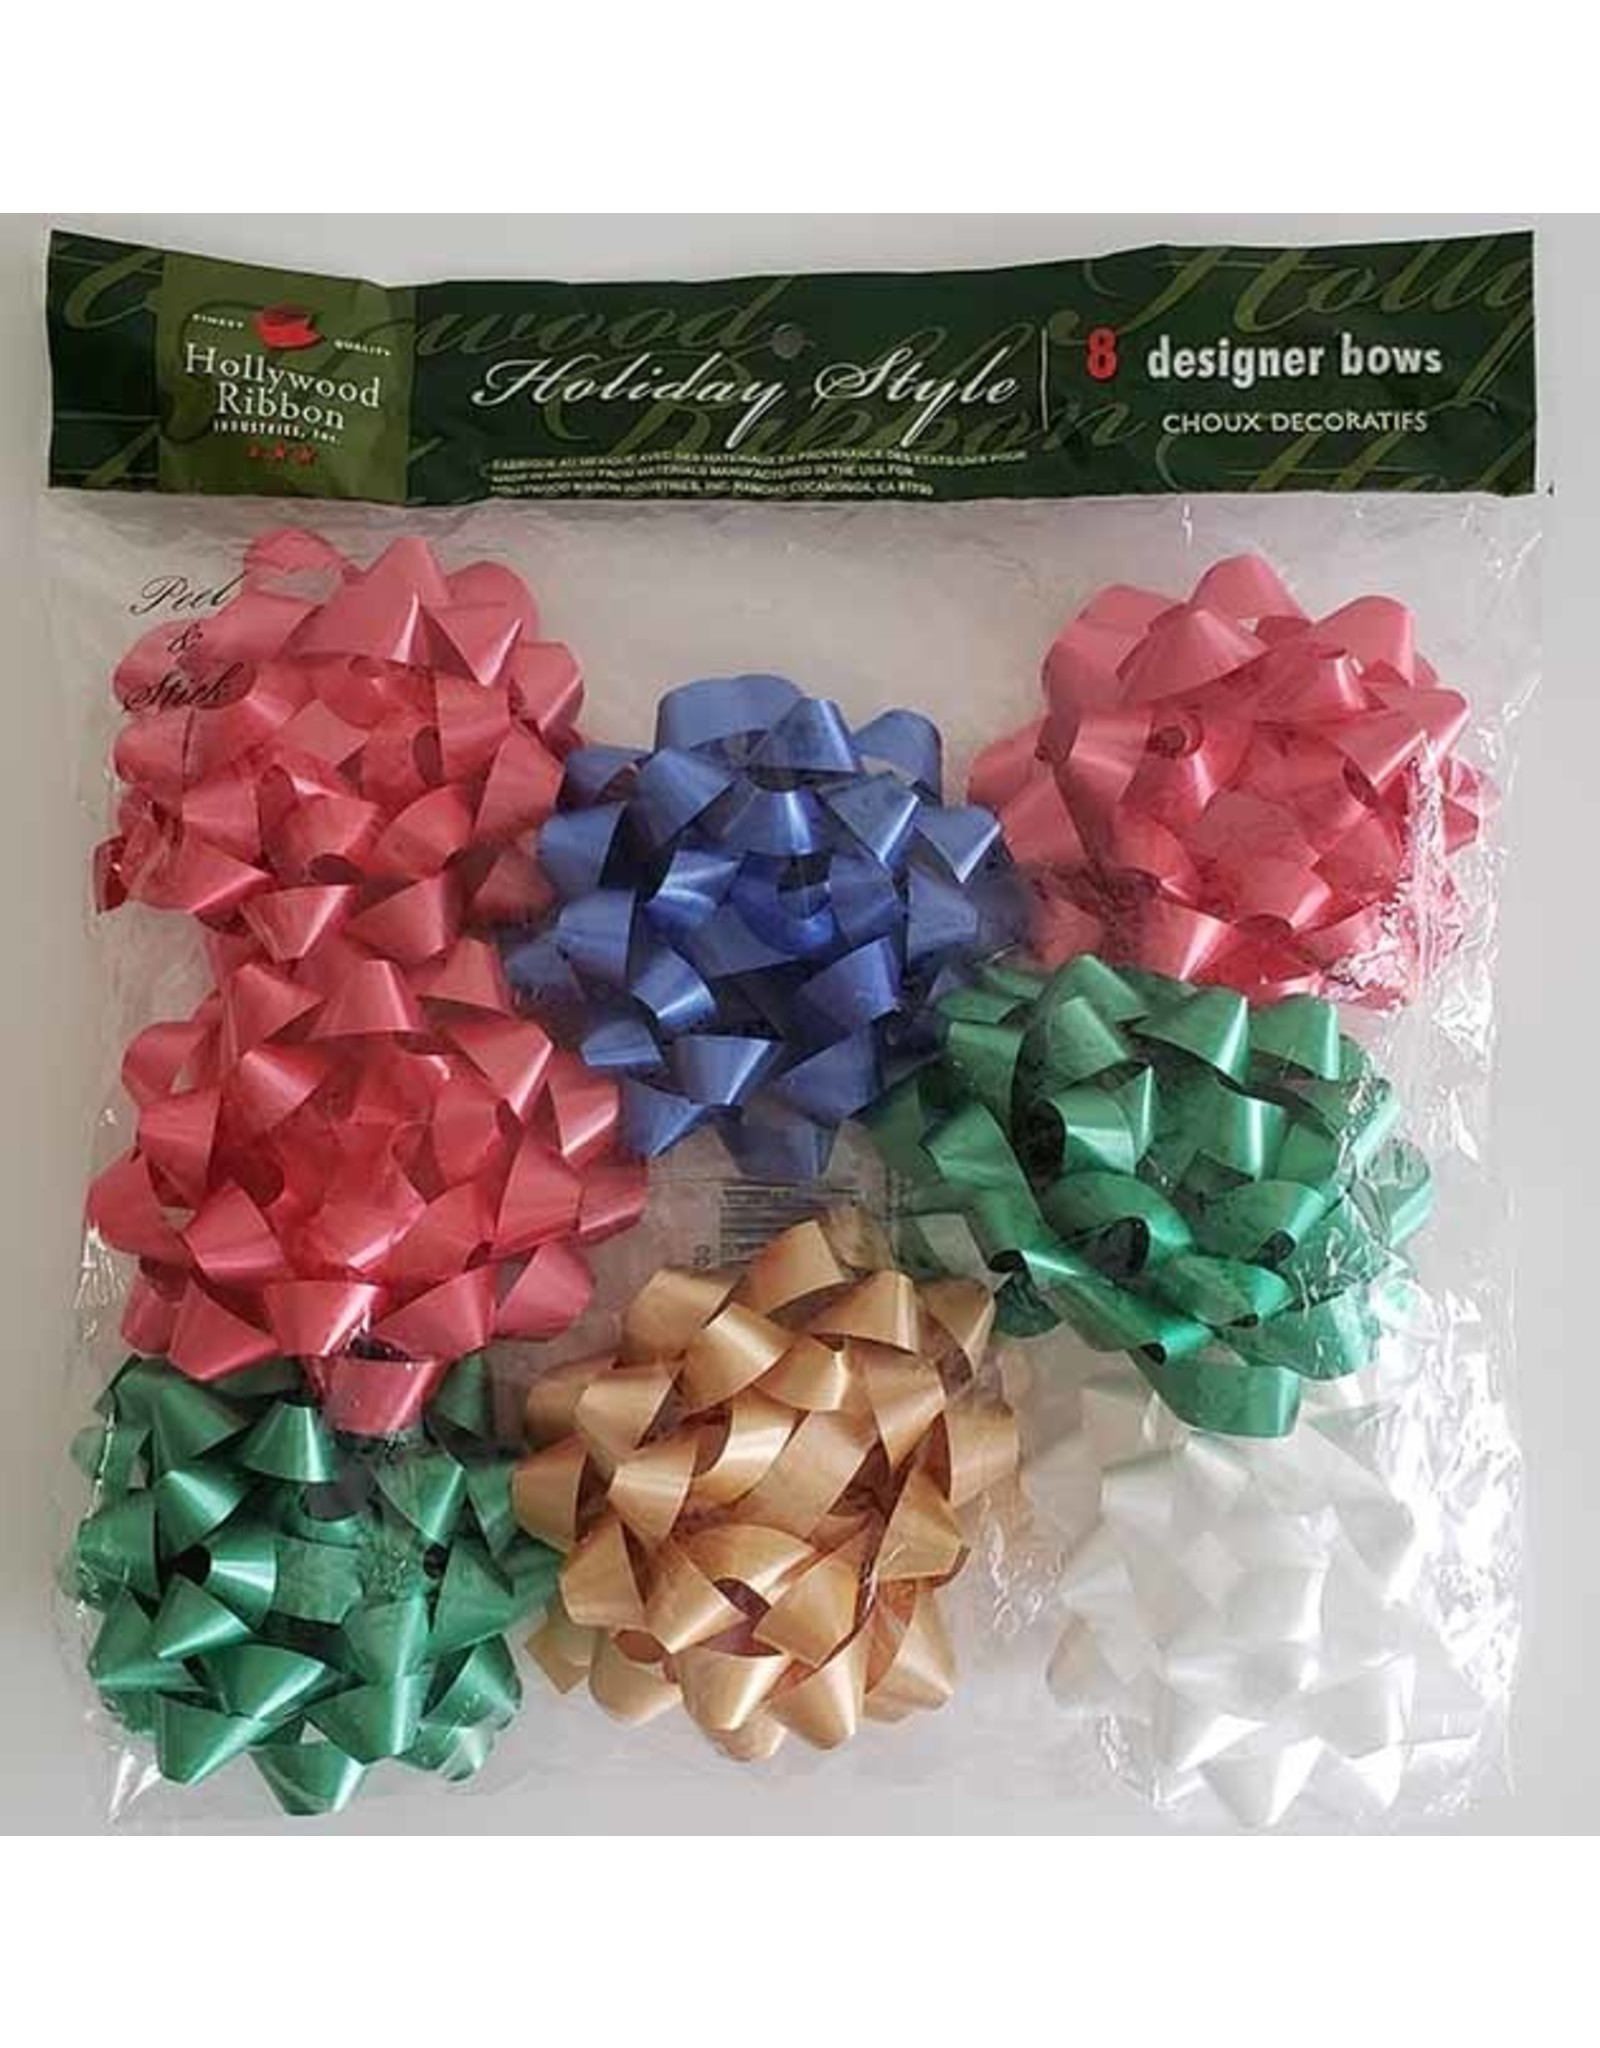 Hollywood Ribbon 8ct. Designer Bows in Asst. Colors